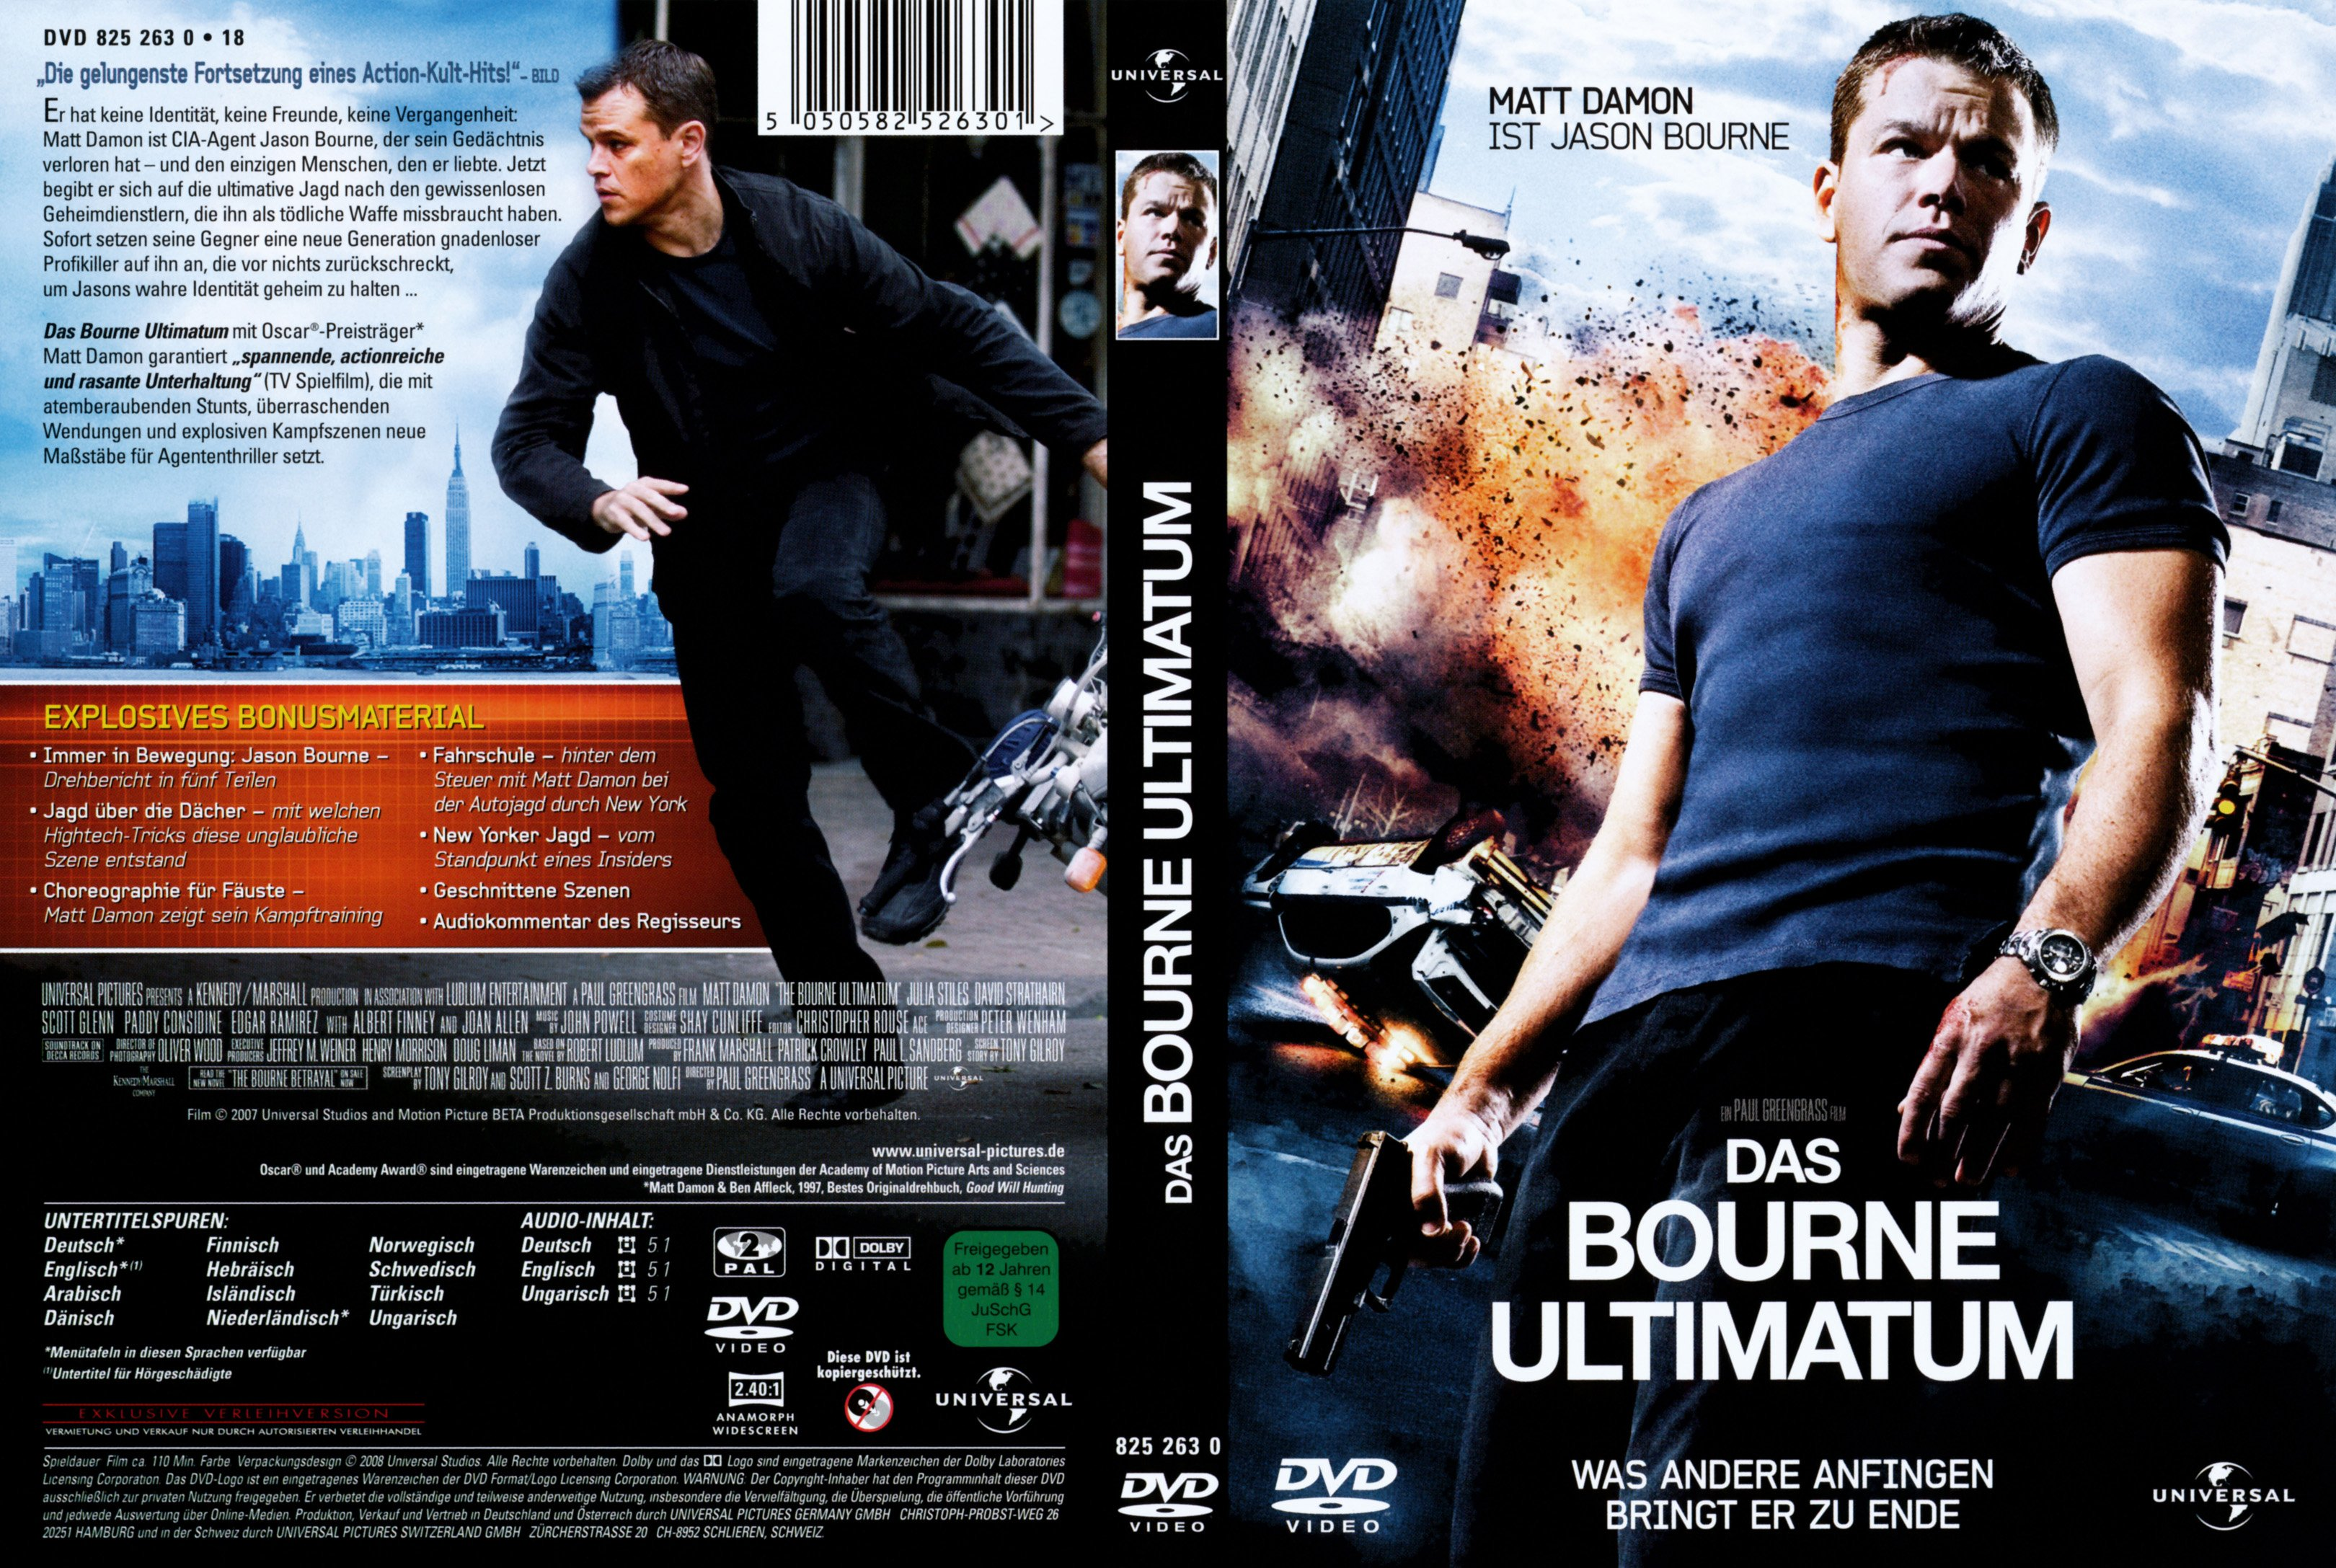 The bourne identity dvd cover